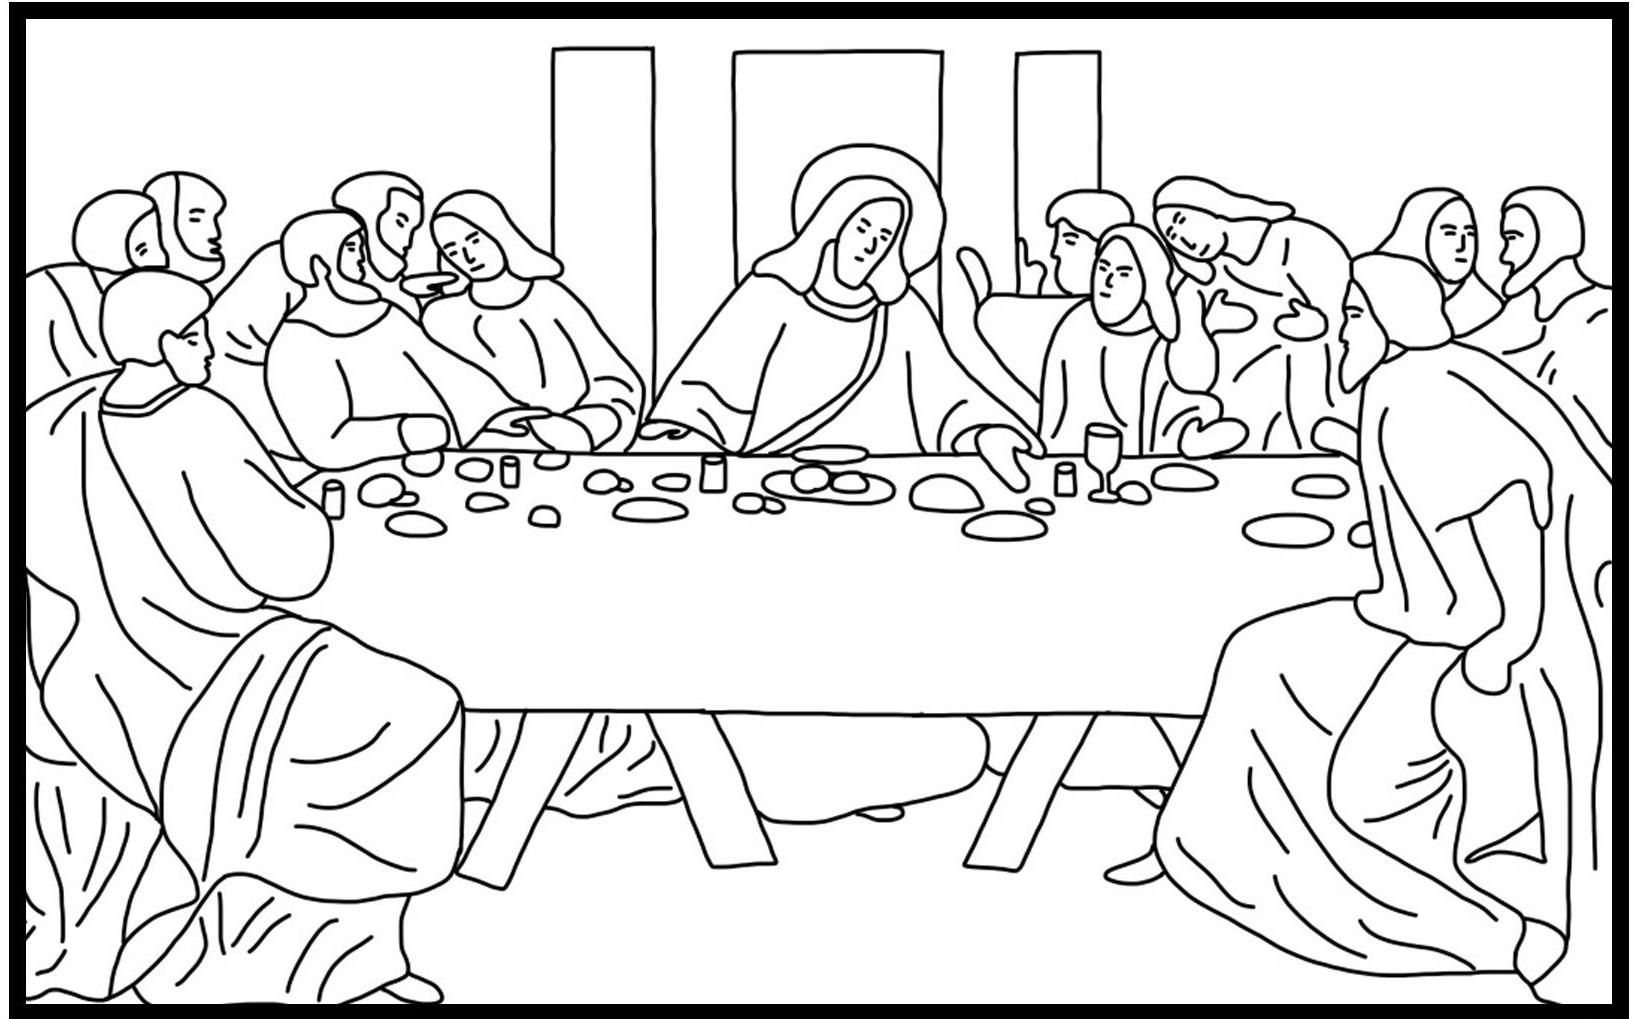 Lent Coloring Pages | COLORING | Lent kids, Catholic lent, Coloring ...